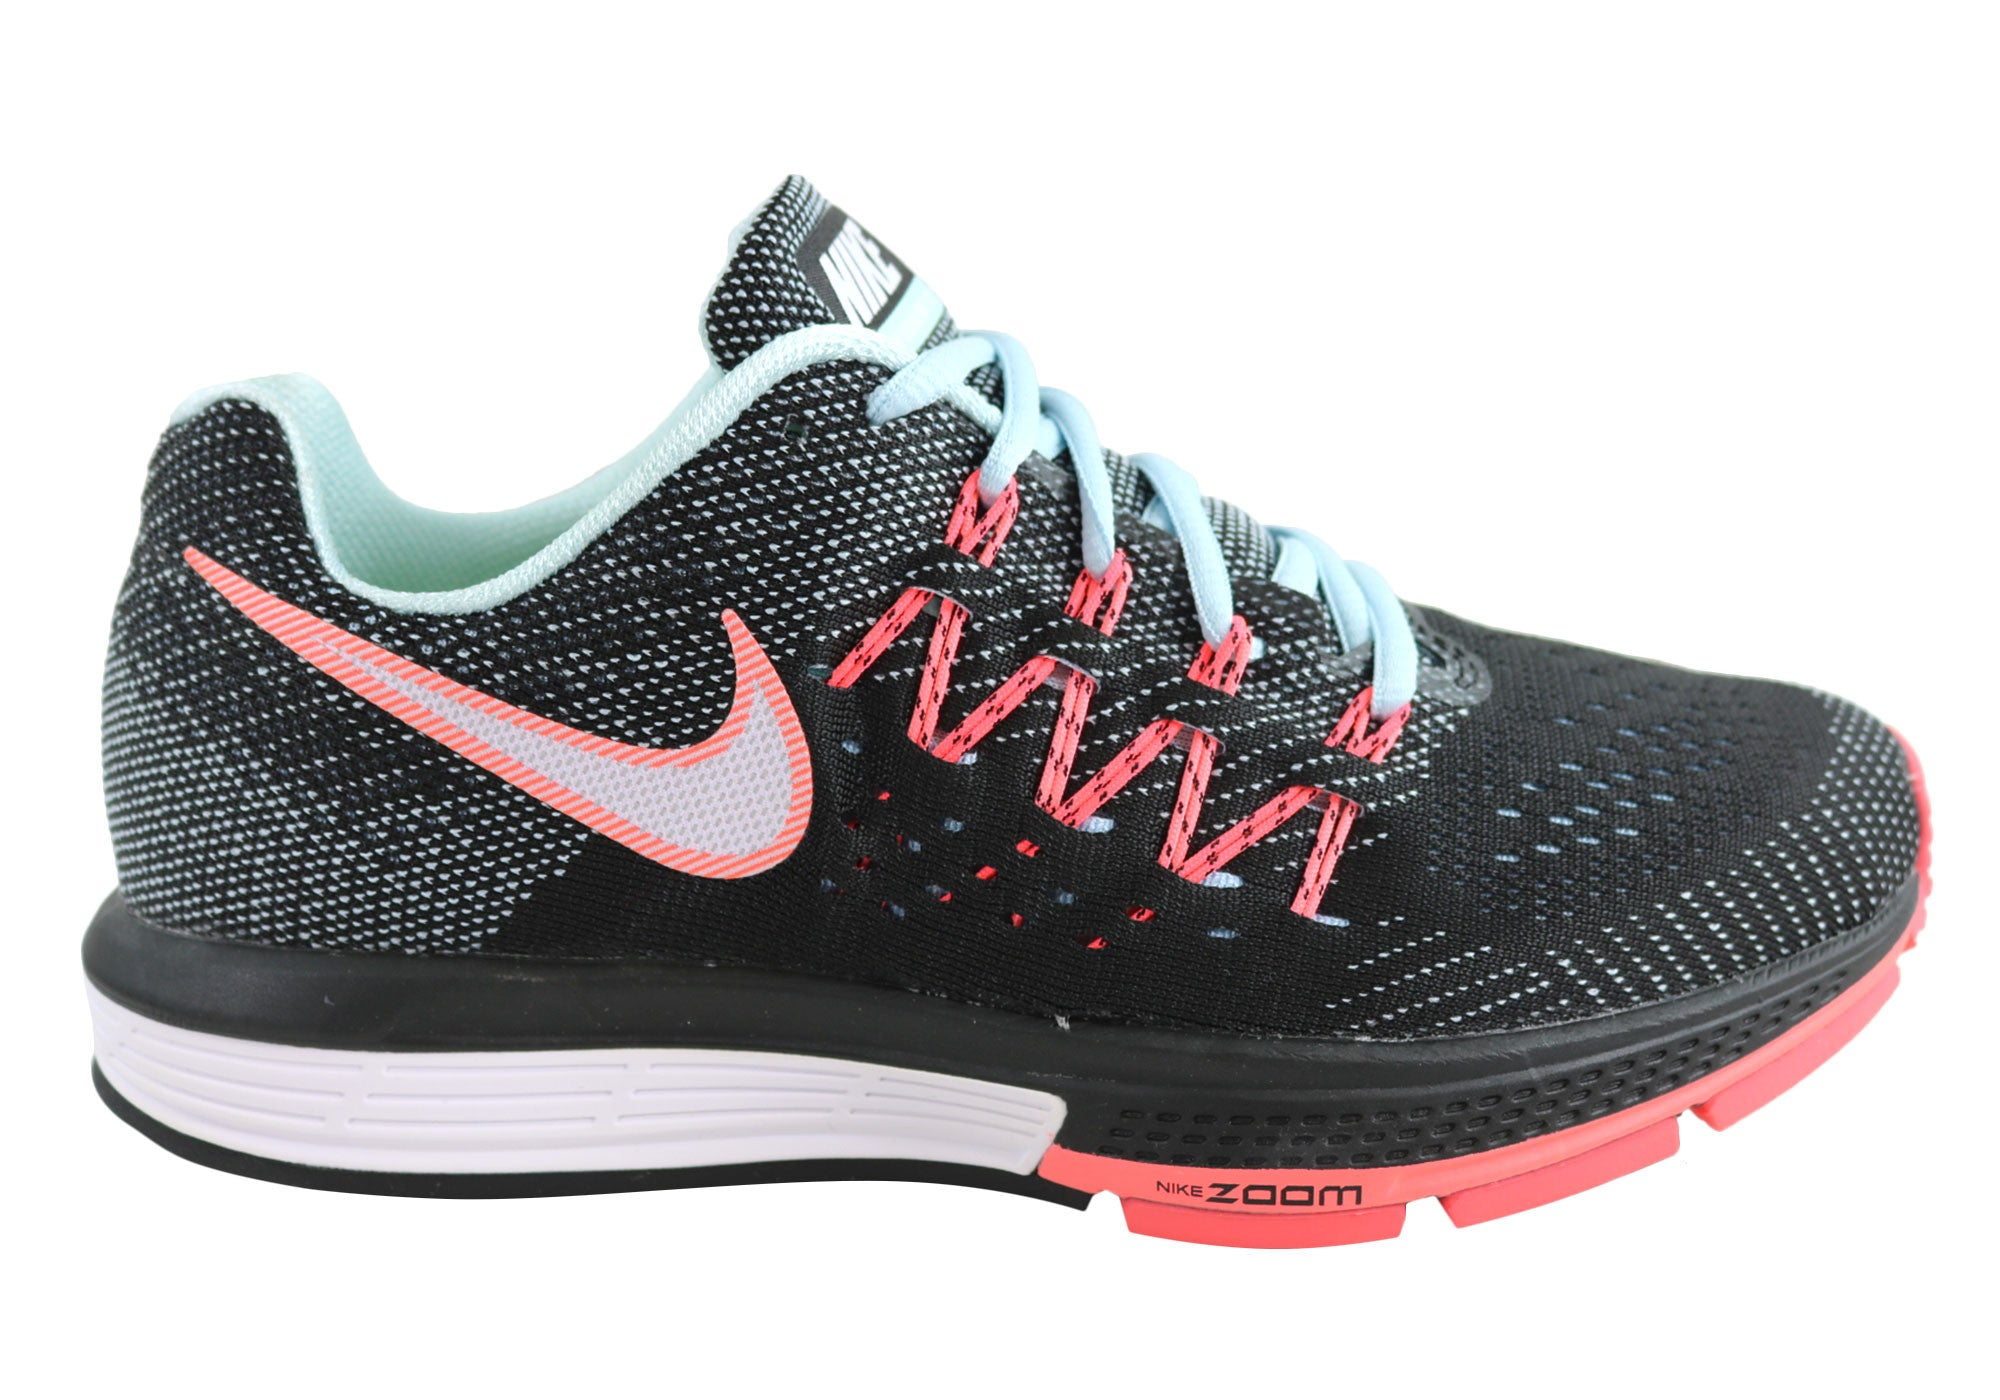 49845c74c232 Home Nike Womens Air Zoom Vomero 10 Comfortable Sport Shoes. Black Hot Lava  ...